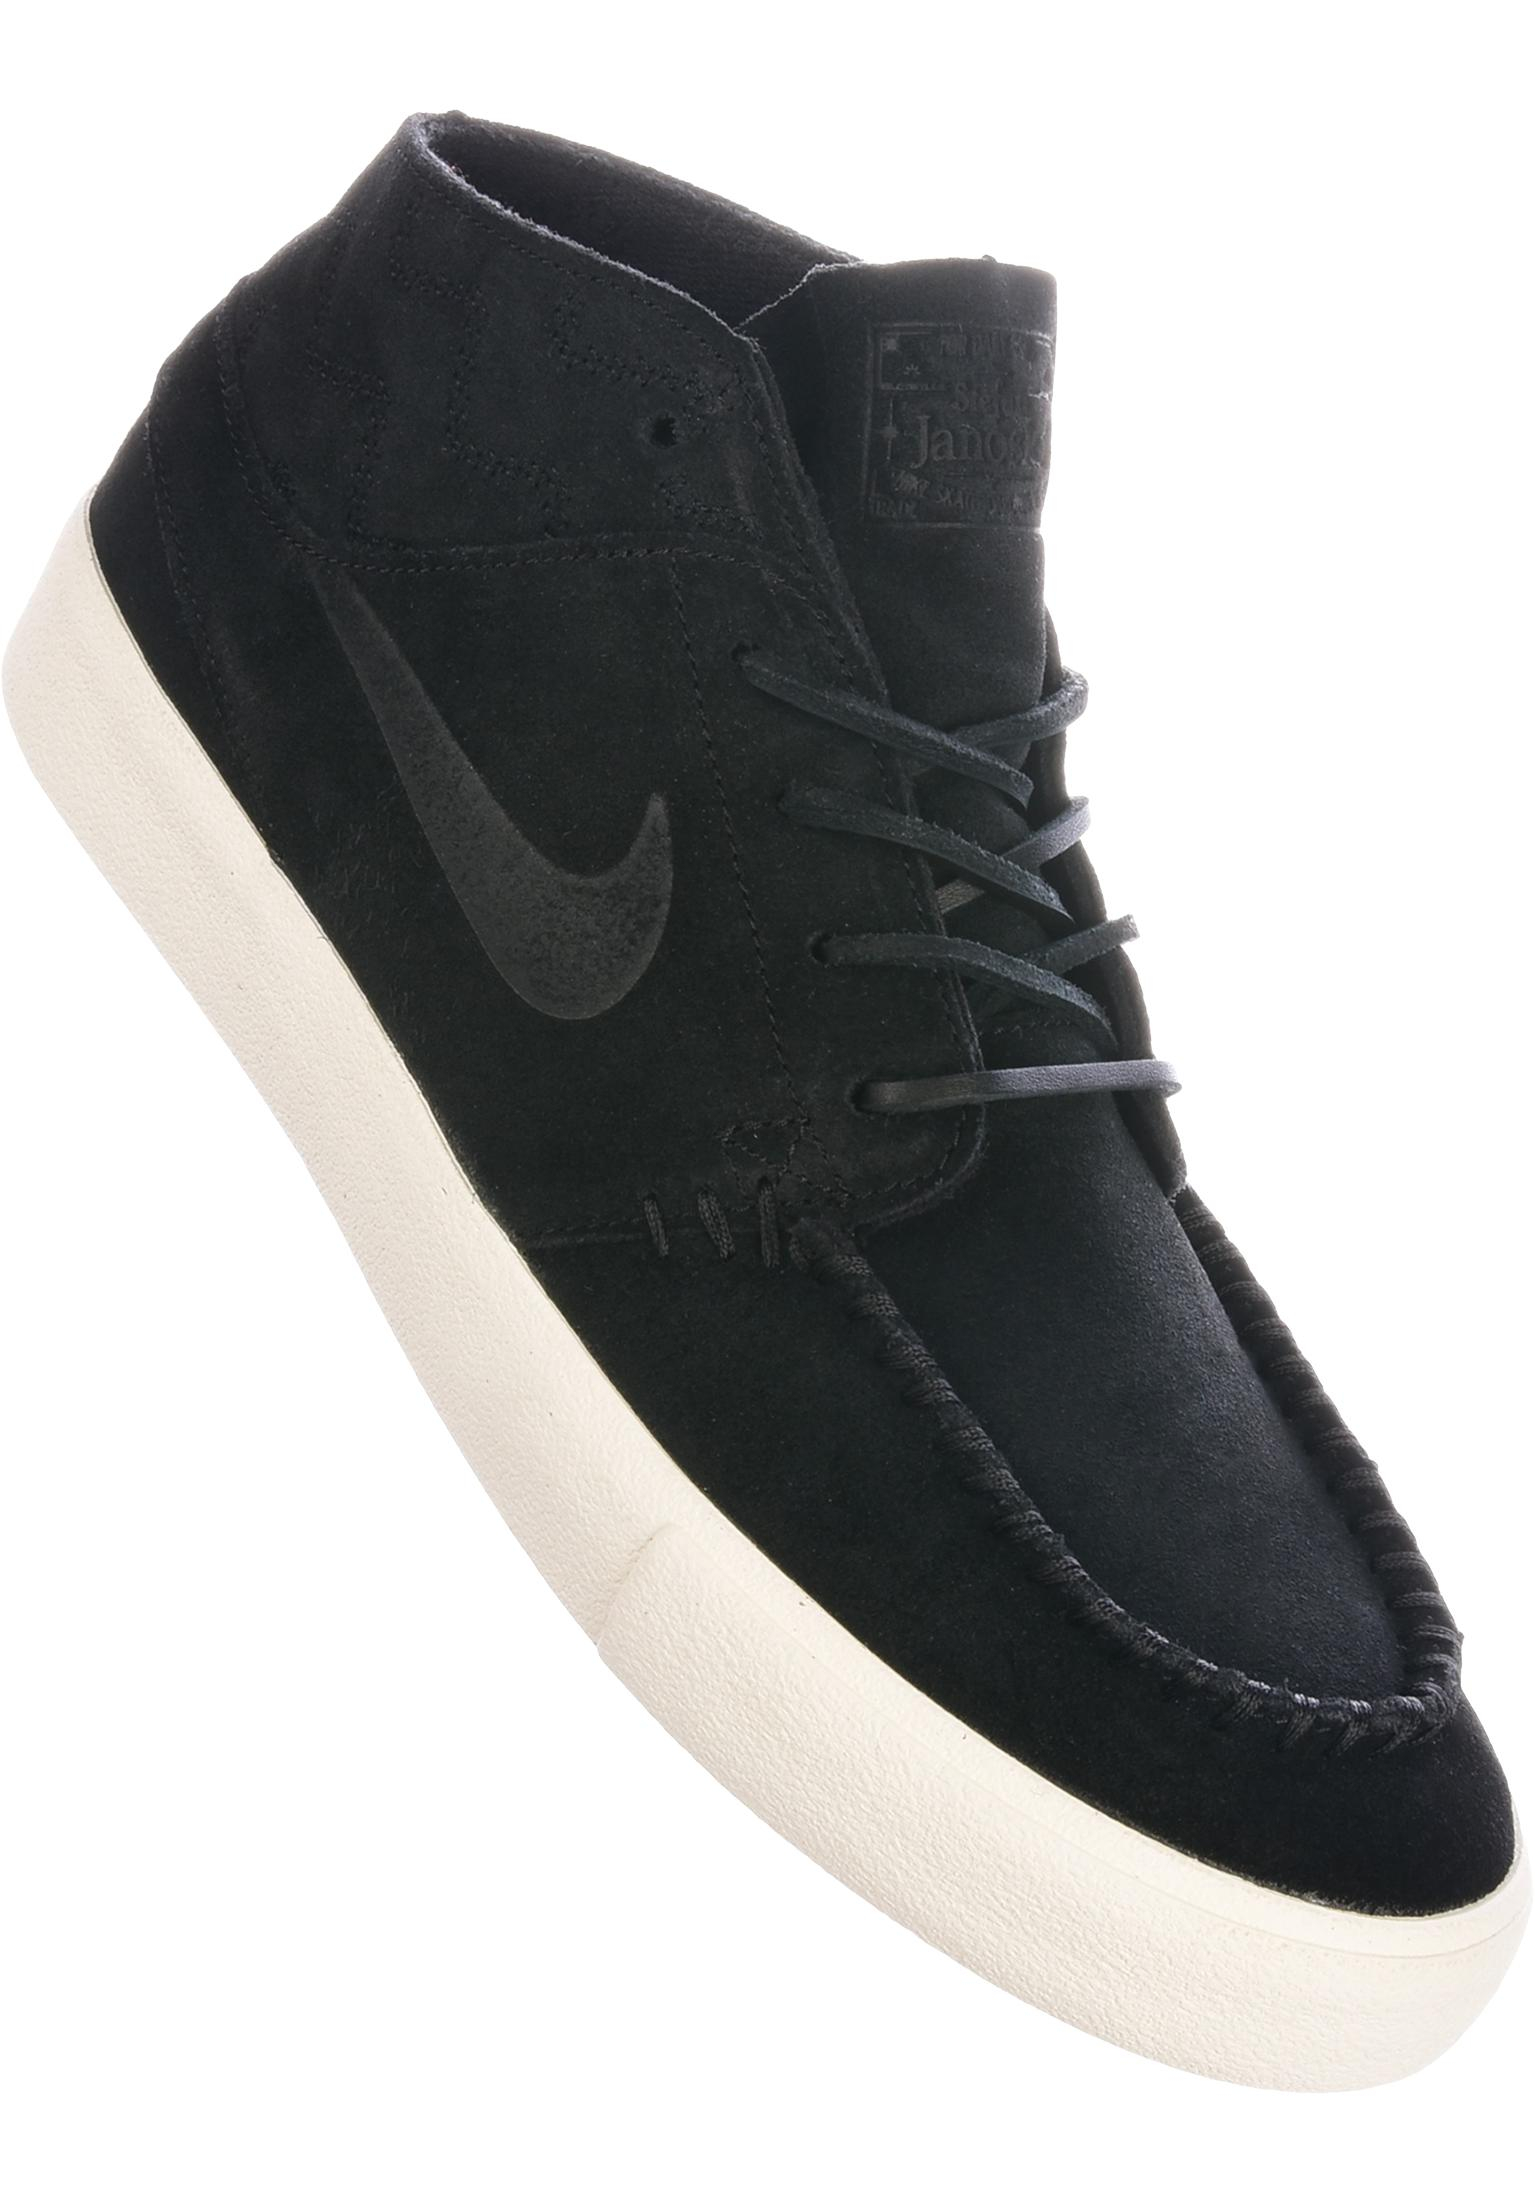 Nike SM Zoom janoski mid Crafted in Gr. 44